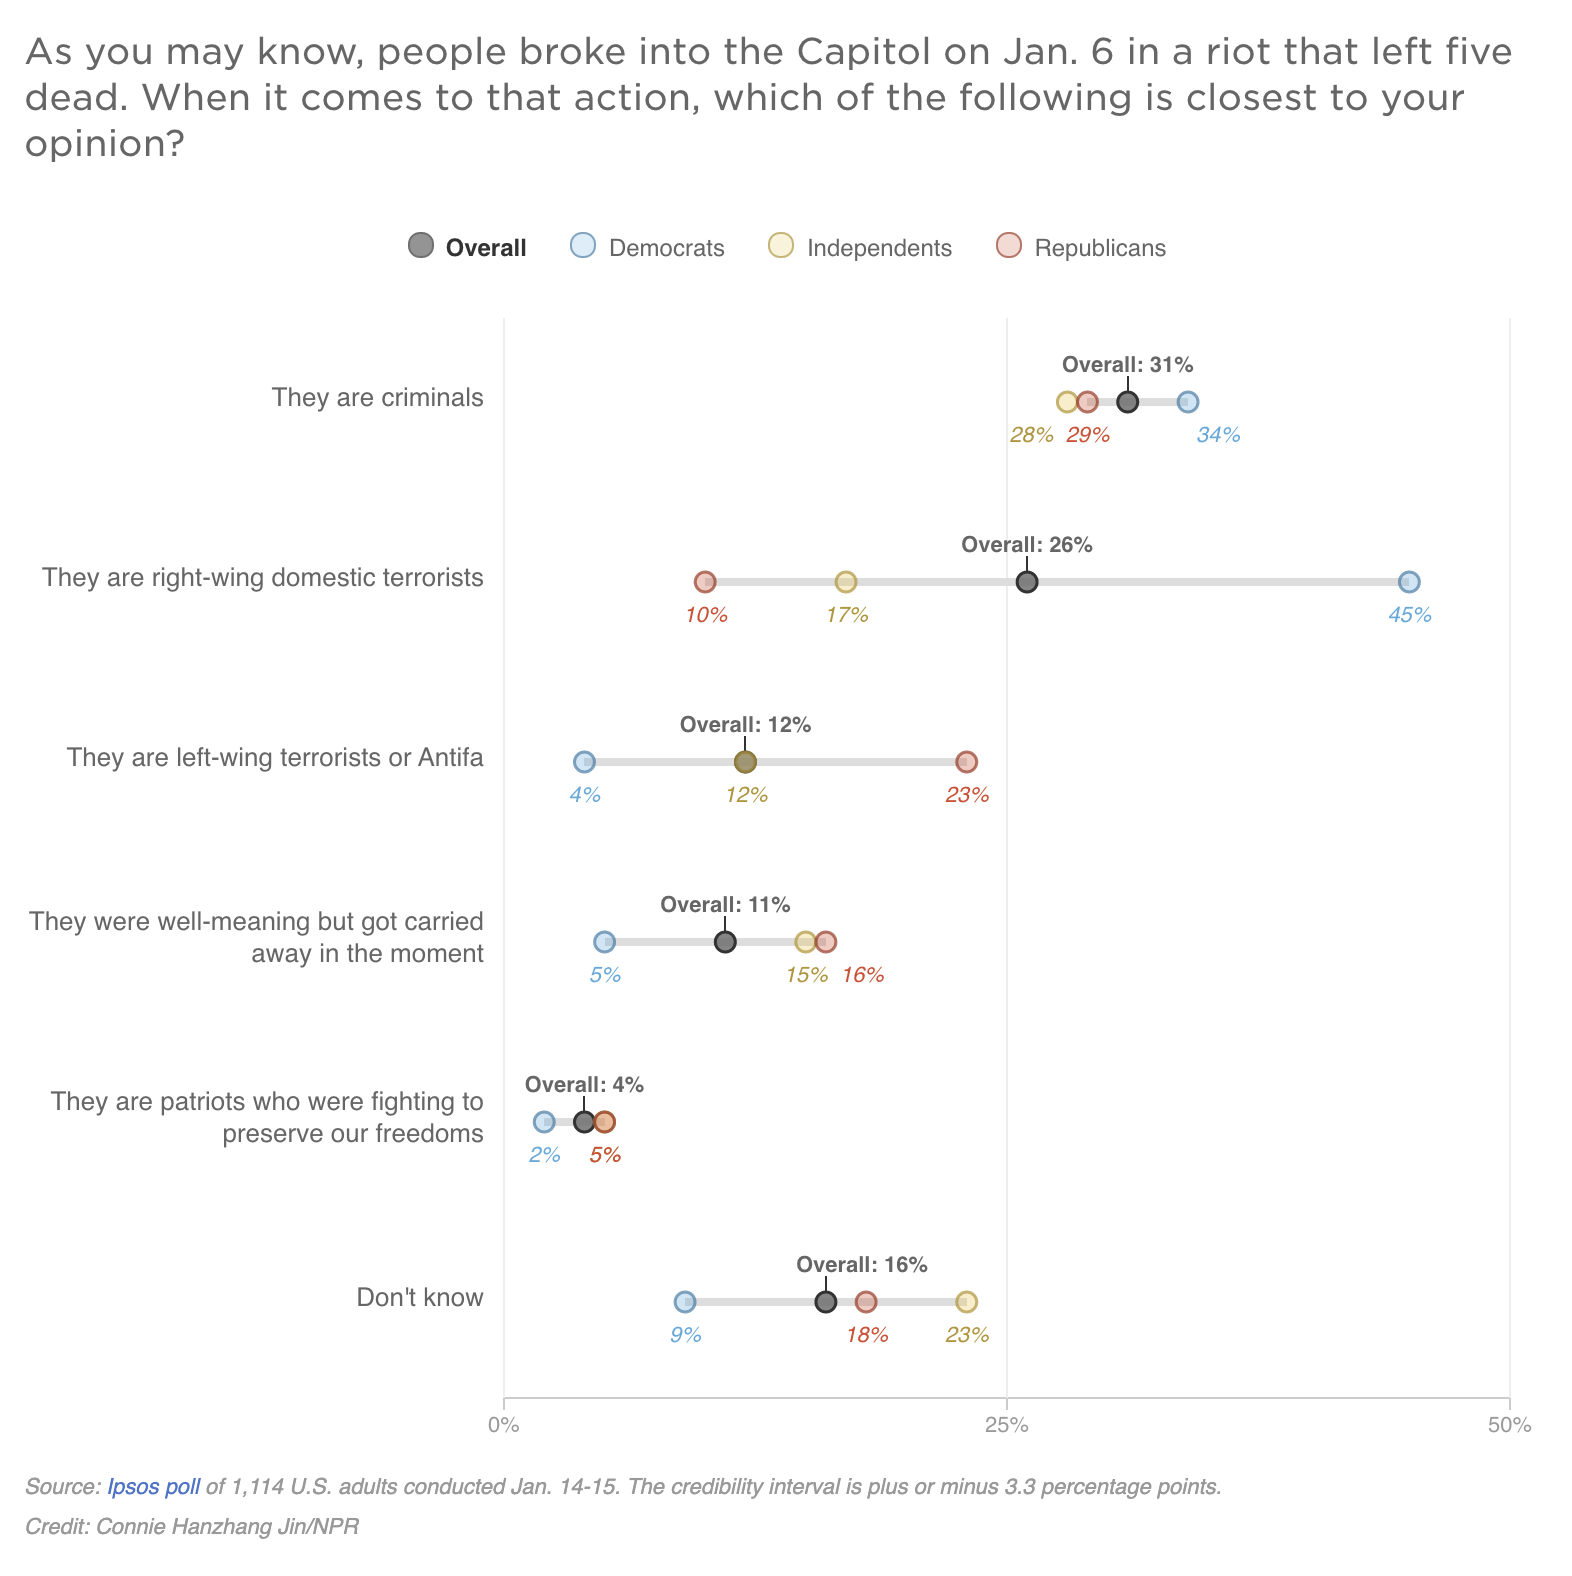 Participants are asked in a survey what their opinions are re: the Capitol insurrection